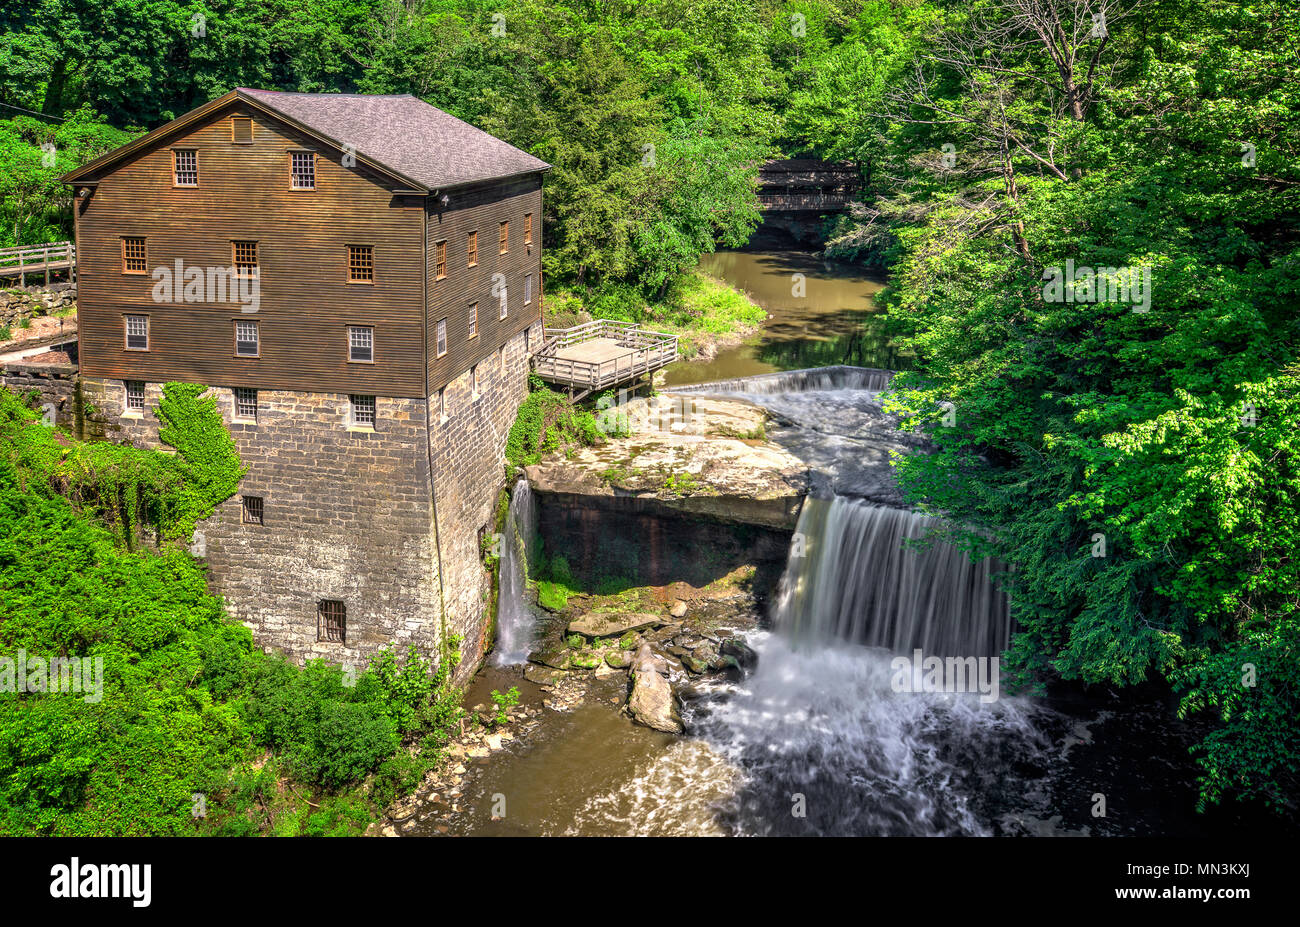 The historic Lanterman's Mill in Mill Creek Park in Youngstown Ohio. Built in 1845 and restored in 1982-1985. The mill still operates today. - Stock Image